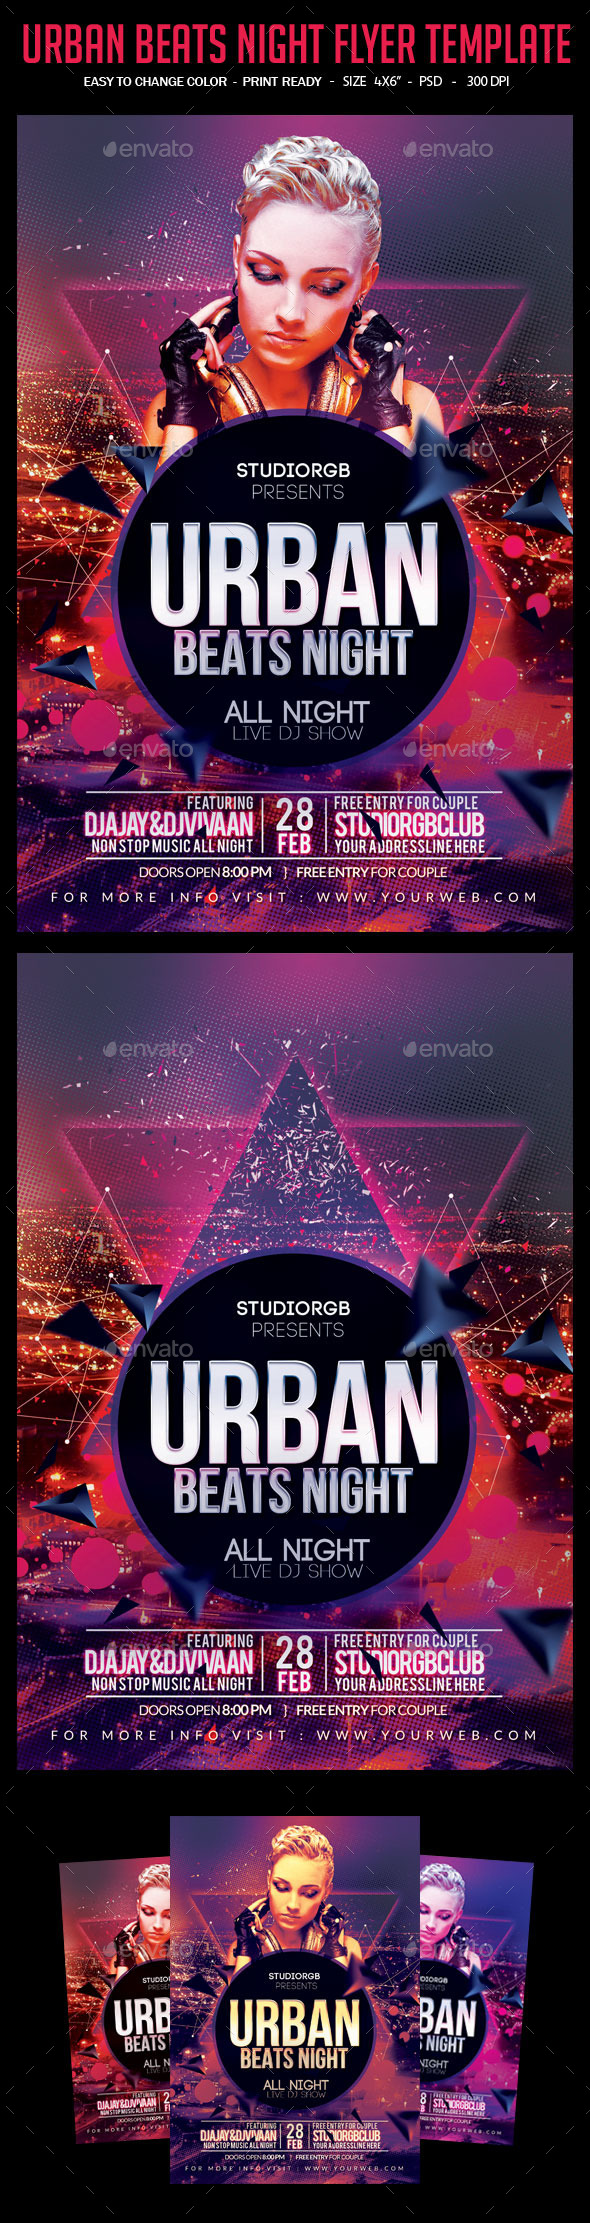 Urban Beats Night Flyer Template - Clubs & Parties Events